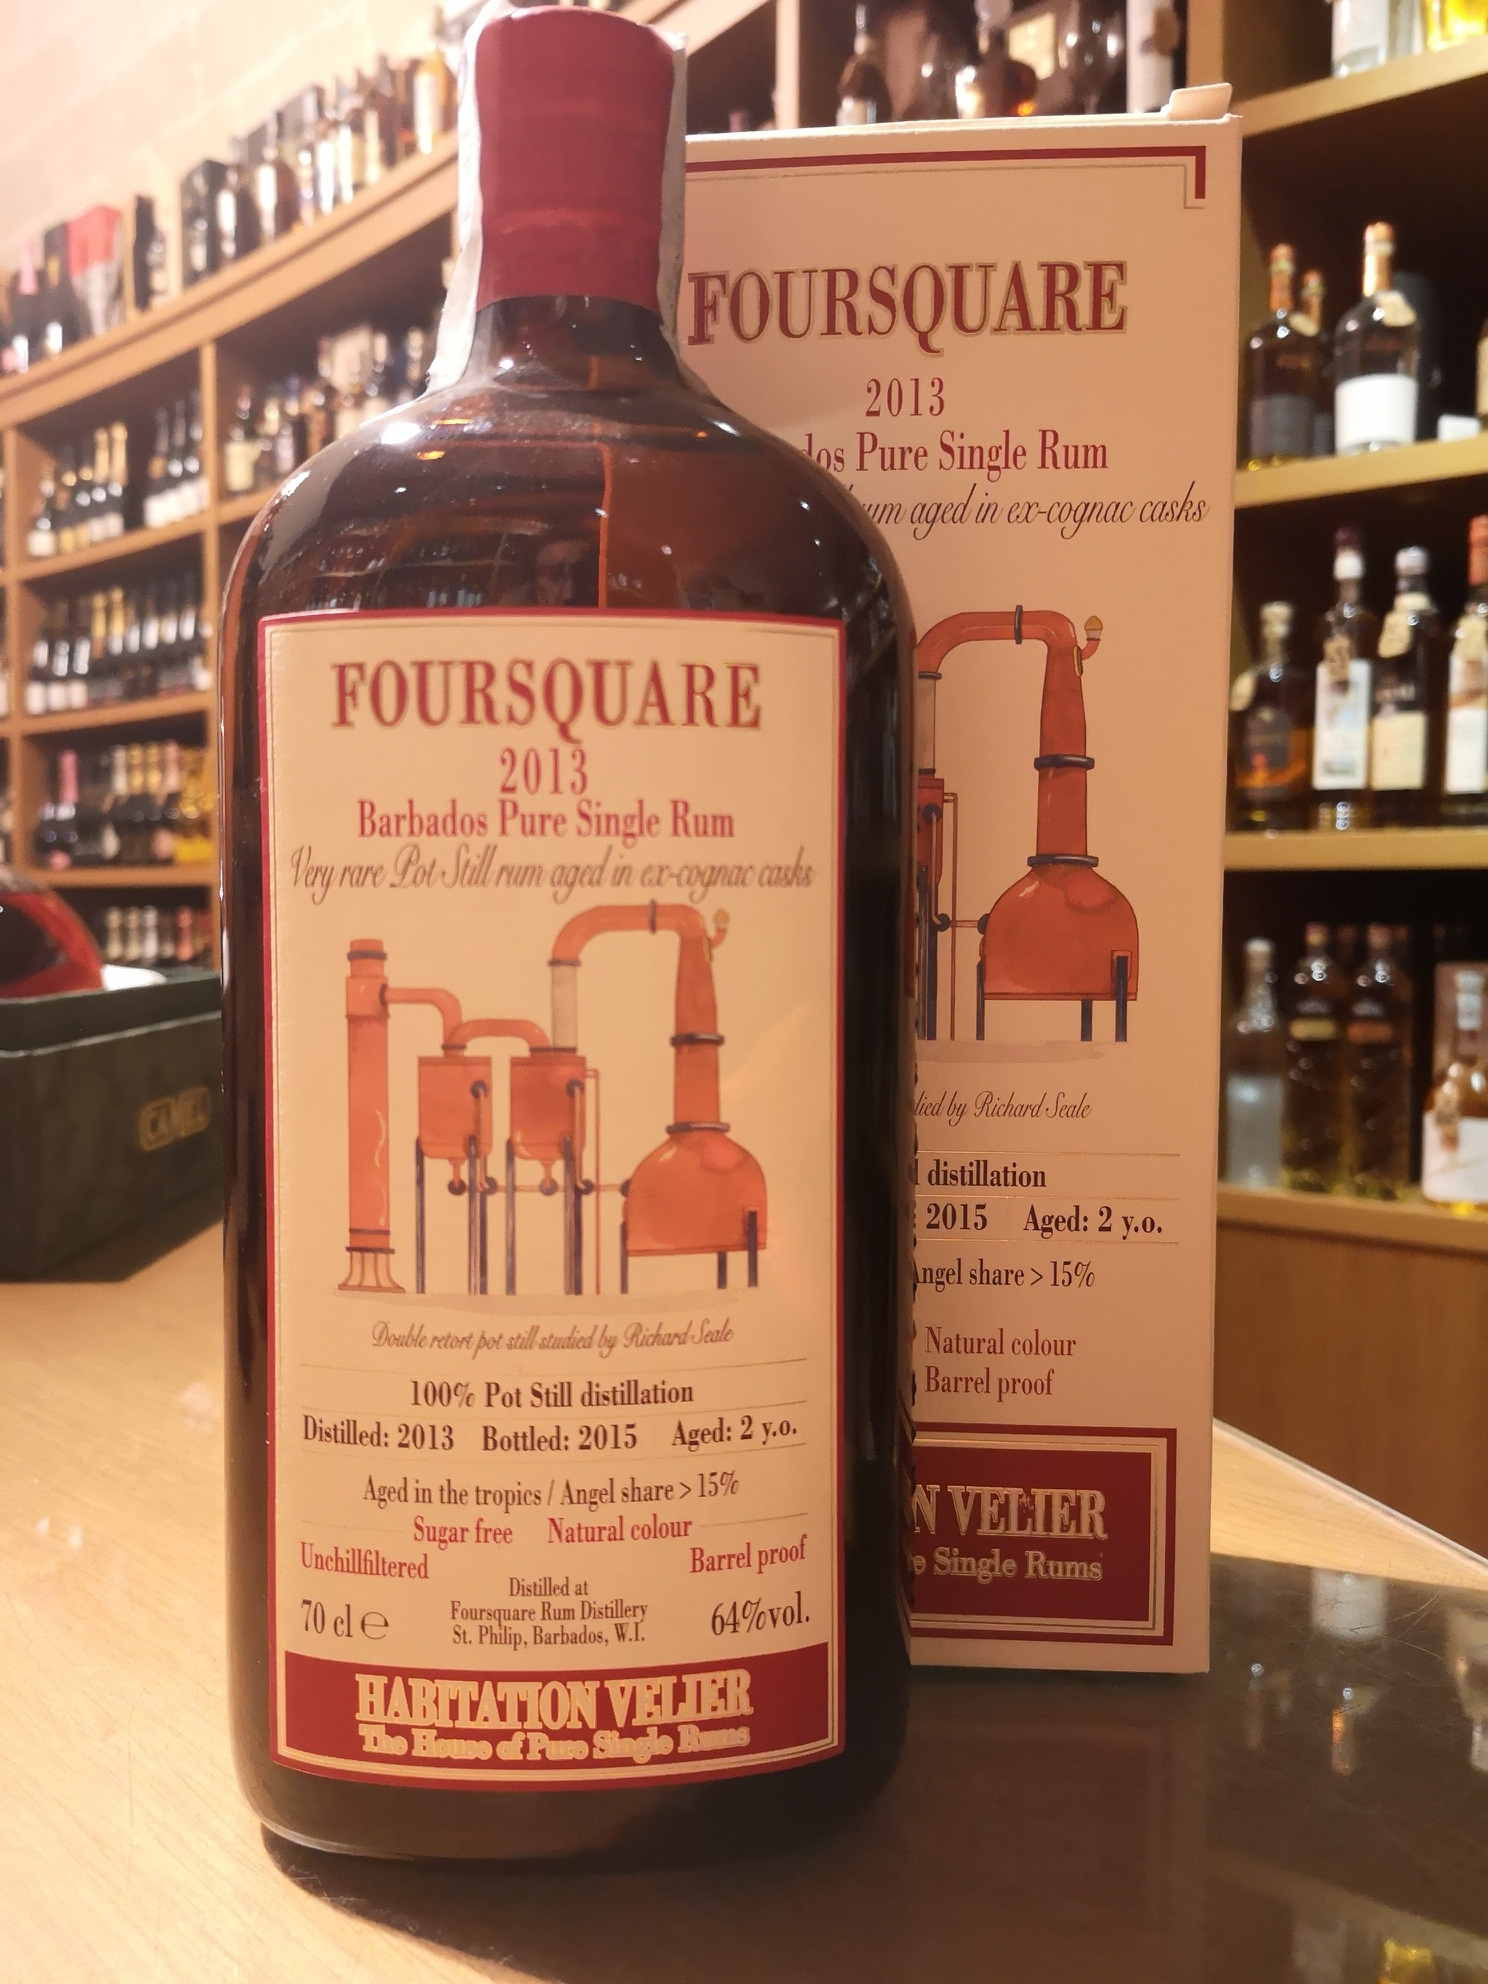 Barbados Pure Single Rum Foursquare 2013 – Habitation Velier